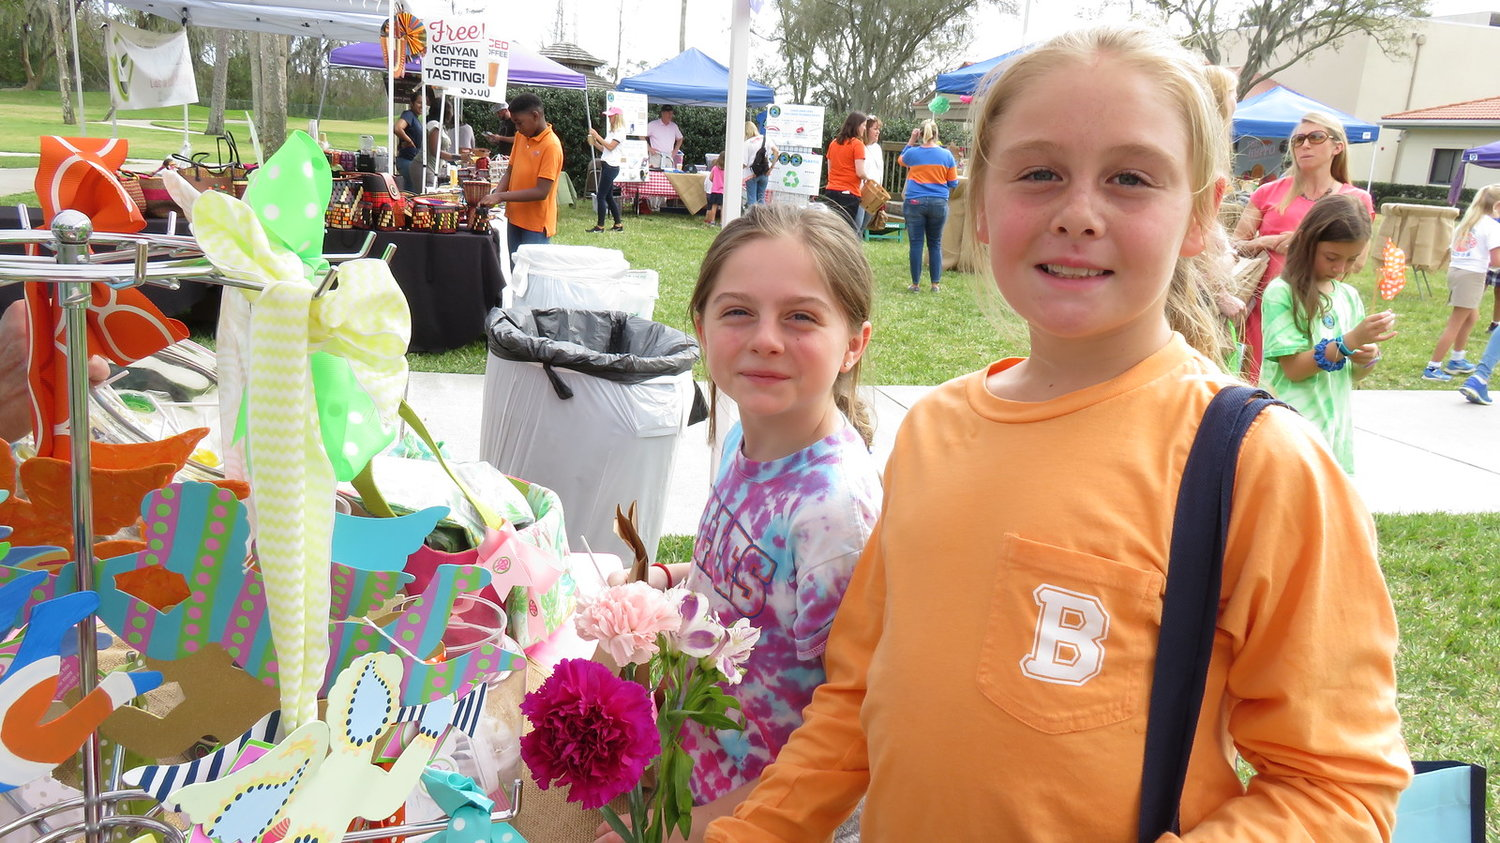 A recent farmers market at the Bolles Ponte Vedra Beach campus helped students understand environmentally conscious consumerism by buying local produce and goods.